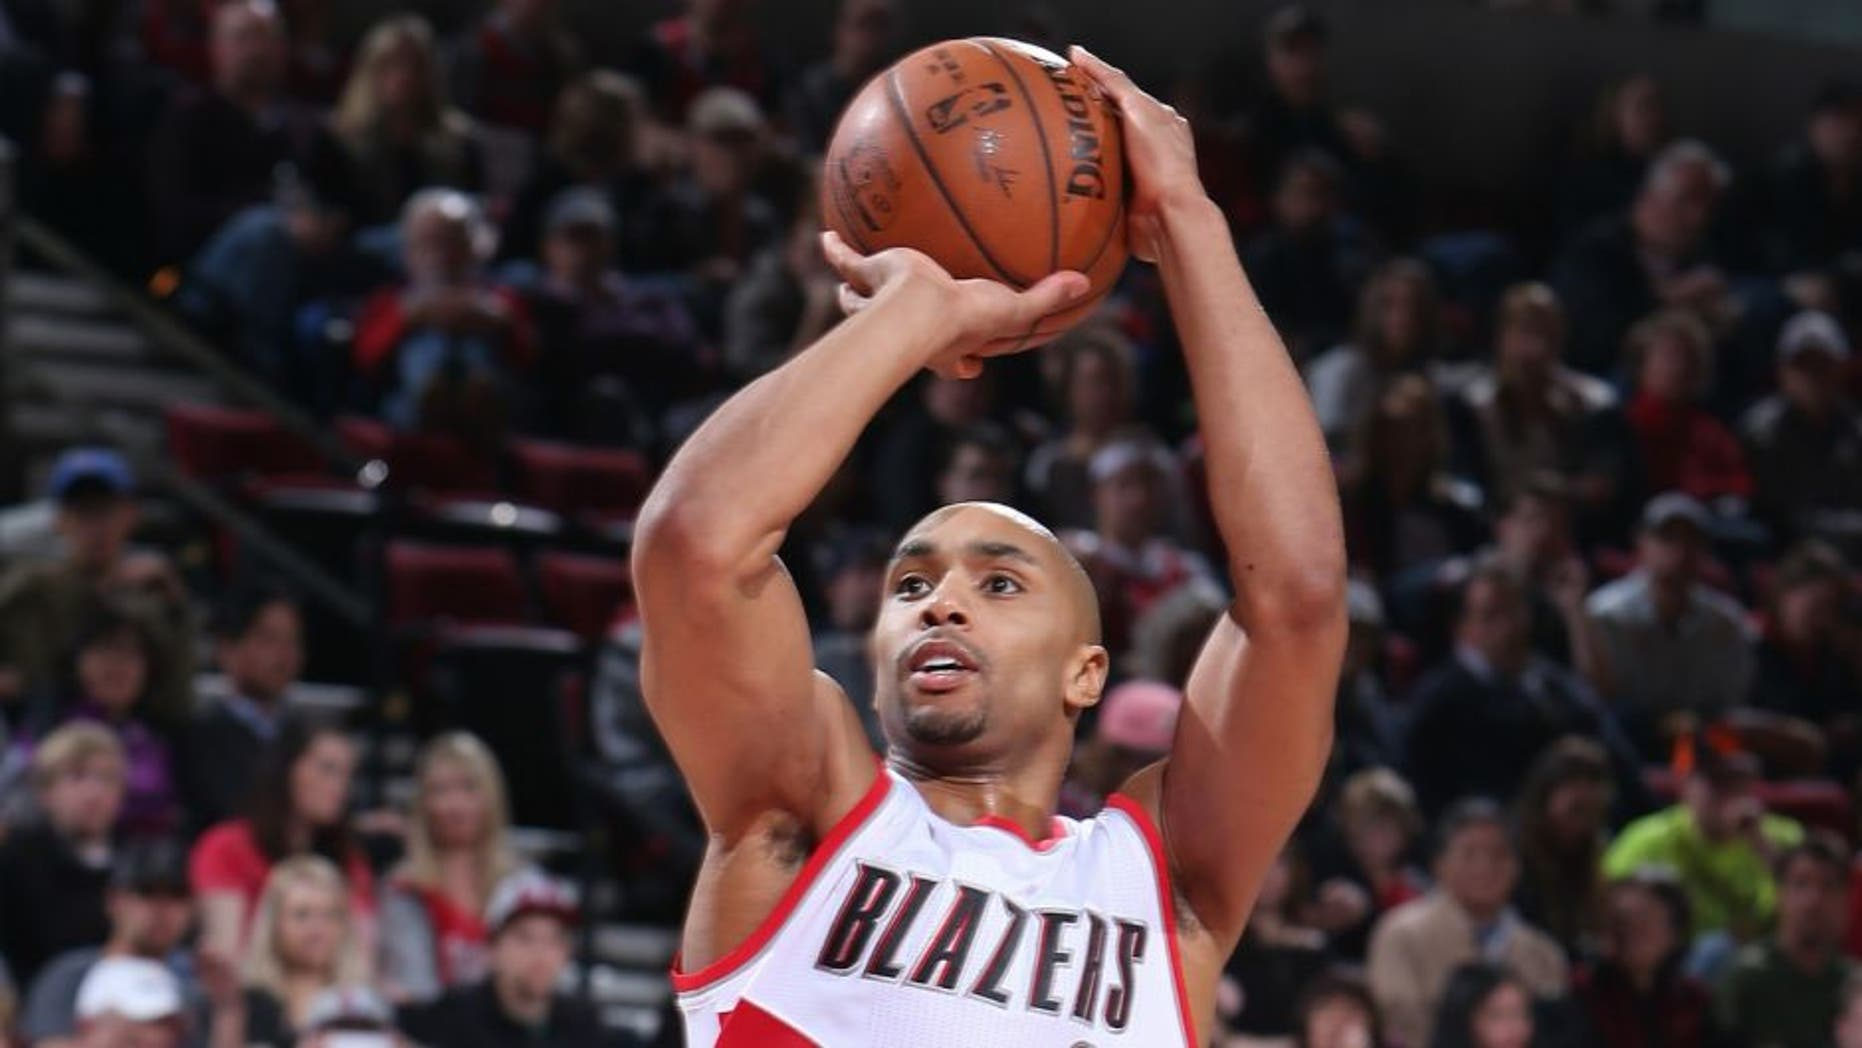 PORTLAND, OR - MARCH 26: Gerald Henderson #9 of the Portland Trail Blazers shoots the ball against the Philadelphia 76ers on March 26, 2016 at the Moda Center in Portland, Oregon. NOTE TO USER: User expressly acknowledges and agrees that, by downloading and or using this Photograph, user is consenting to the terms and conditions of the Getty Images License Agreement. Mandatory Copyright Notice: Copyright 2016 NBAE (Photo by Sam Forencich/NBAE via Getty Images)